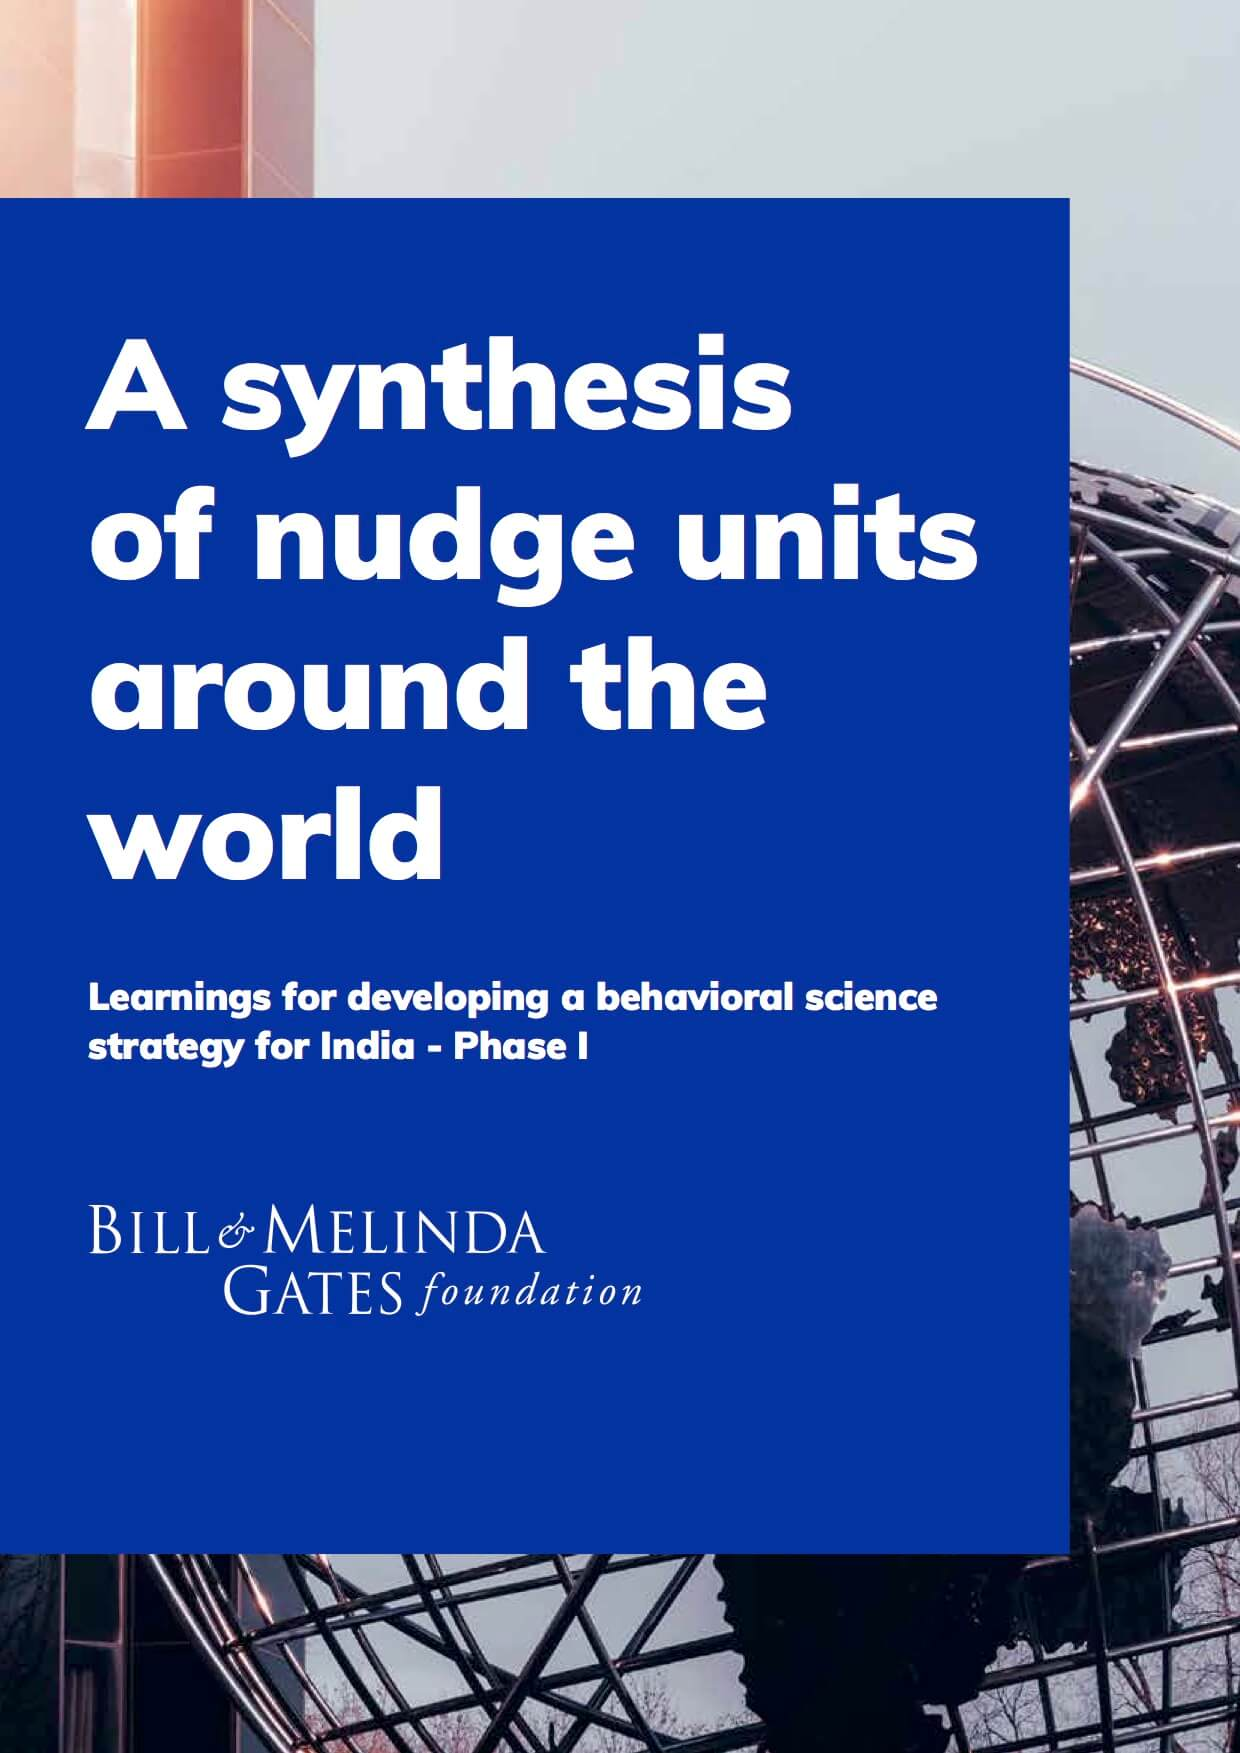 A synthesis of nudge units around the world